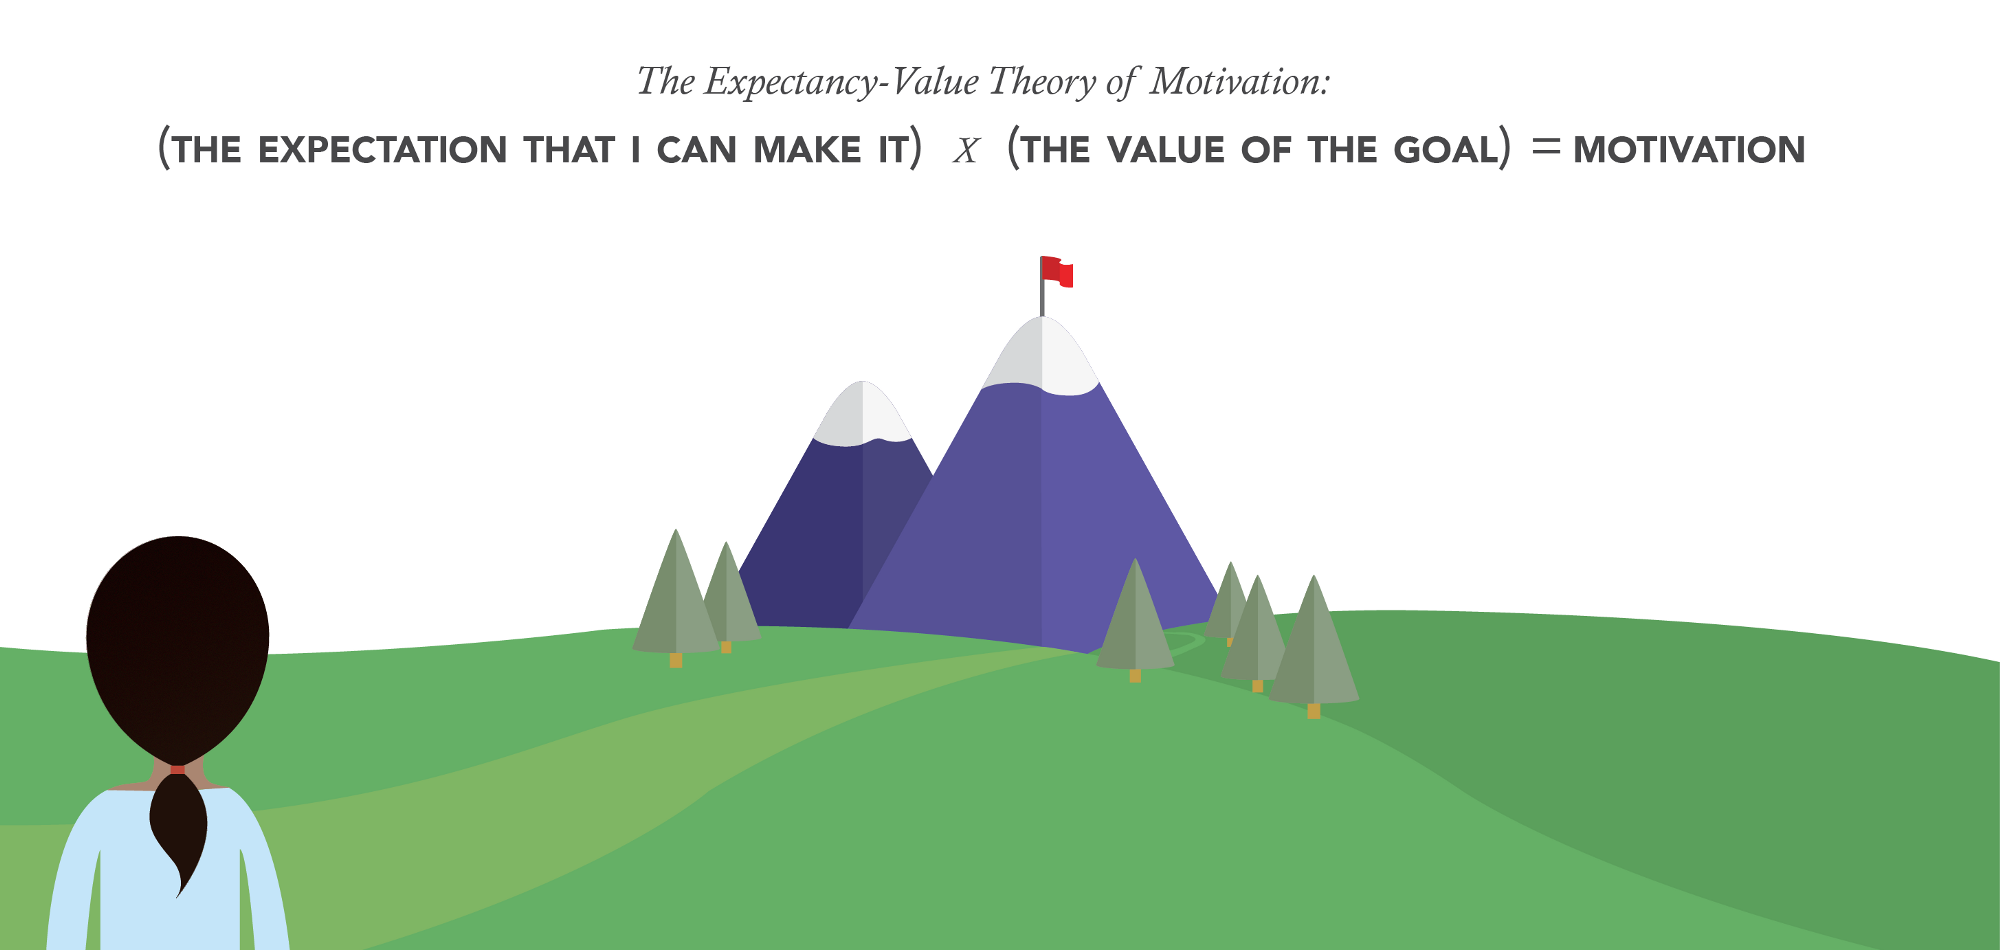 expectancy value theory of motivation.png